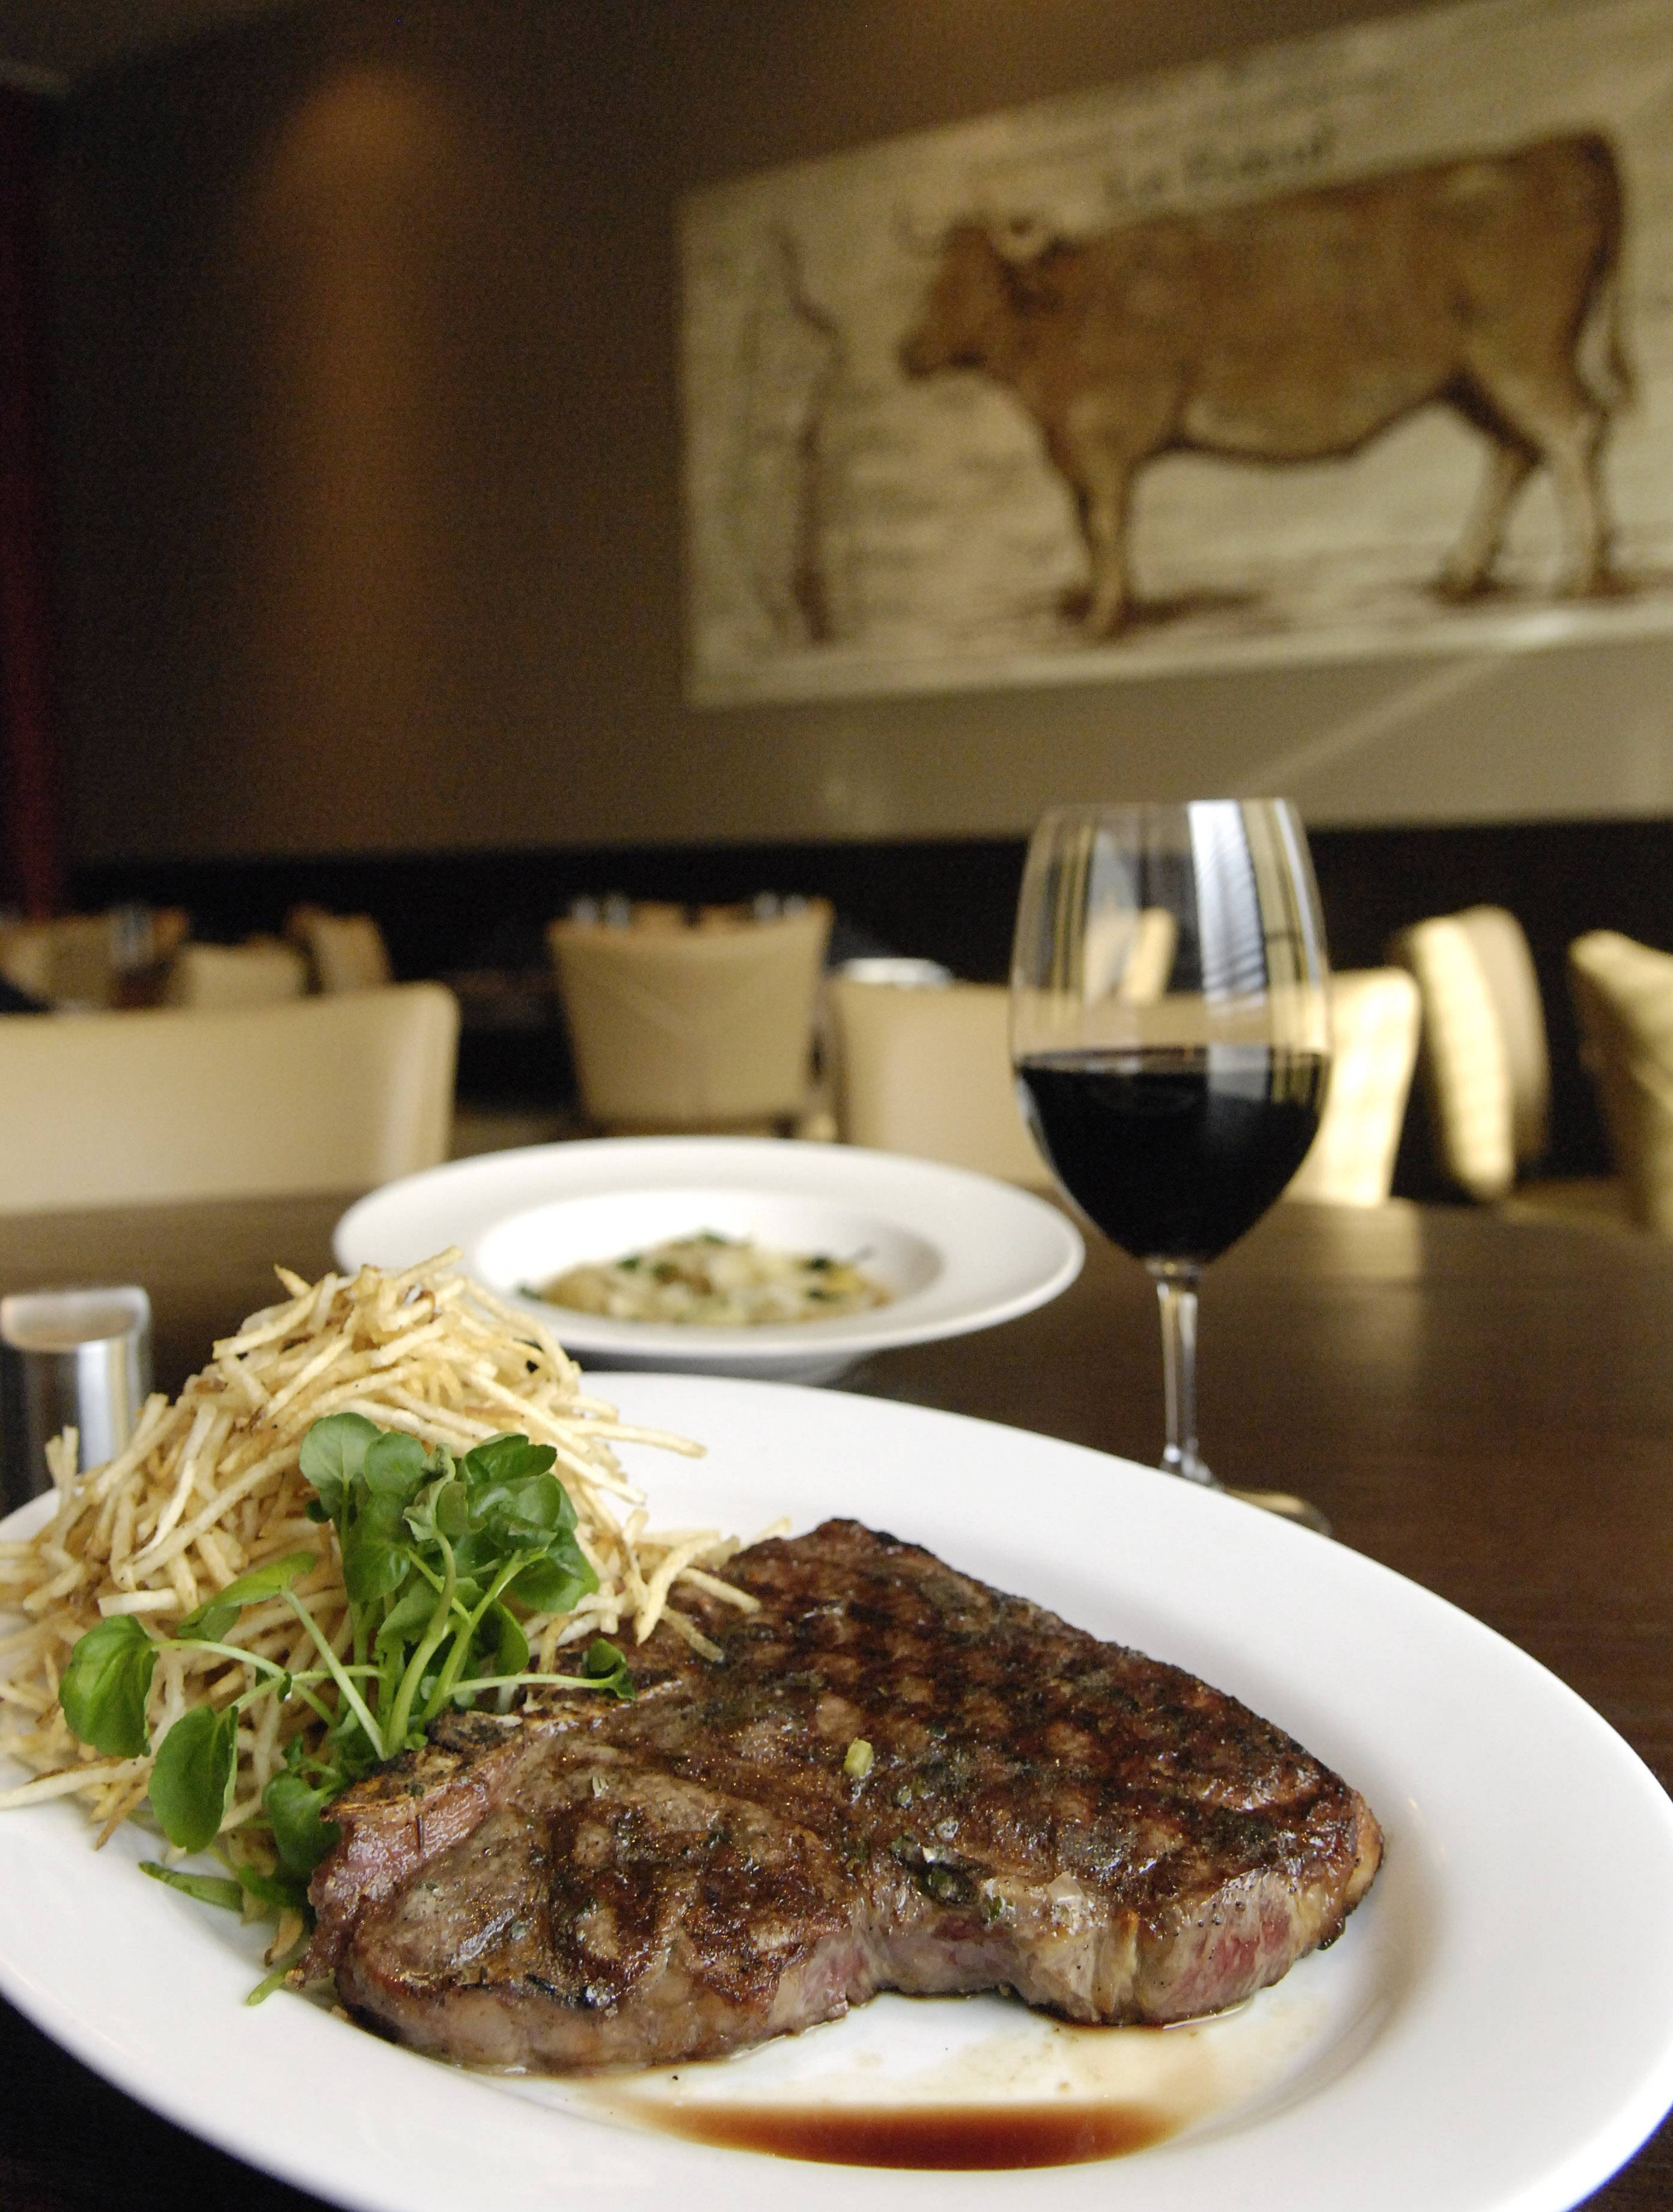 Laura Stoecker/lstoecker@dailyherald.com T-Bone steak with herb butter and shoestring potatoes is on the menu at T-Bones restaurant located at 1890 W. Main St. in St. Charles.